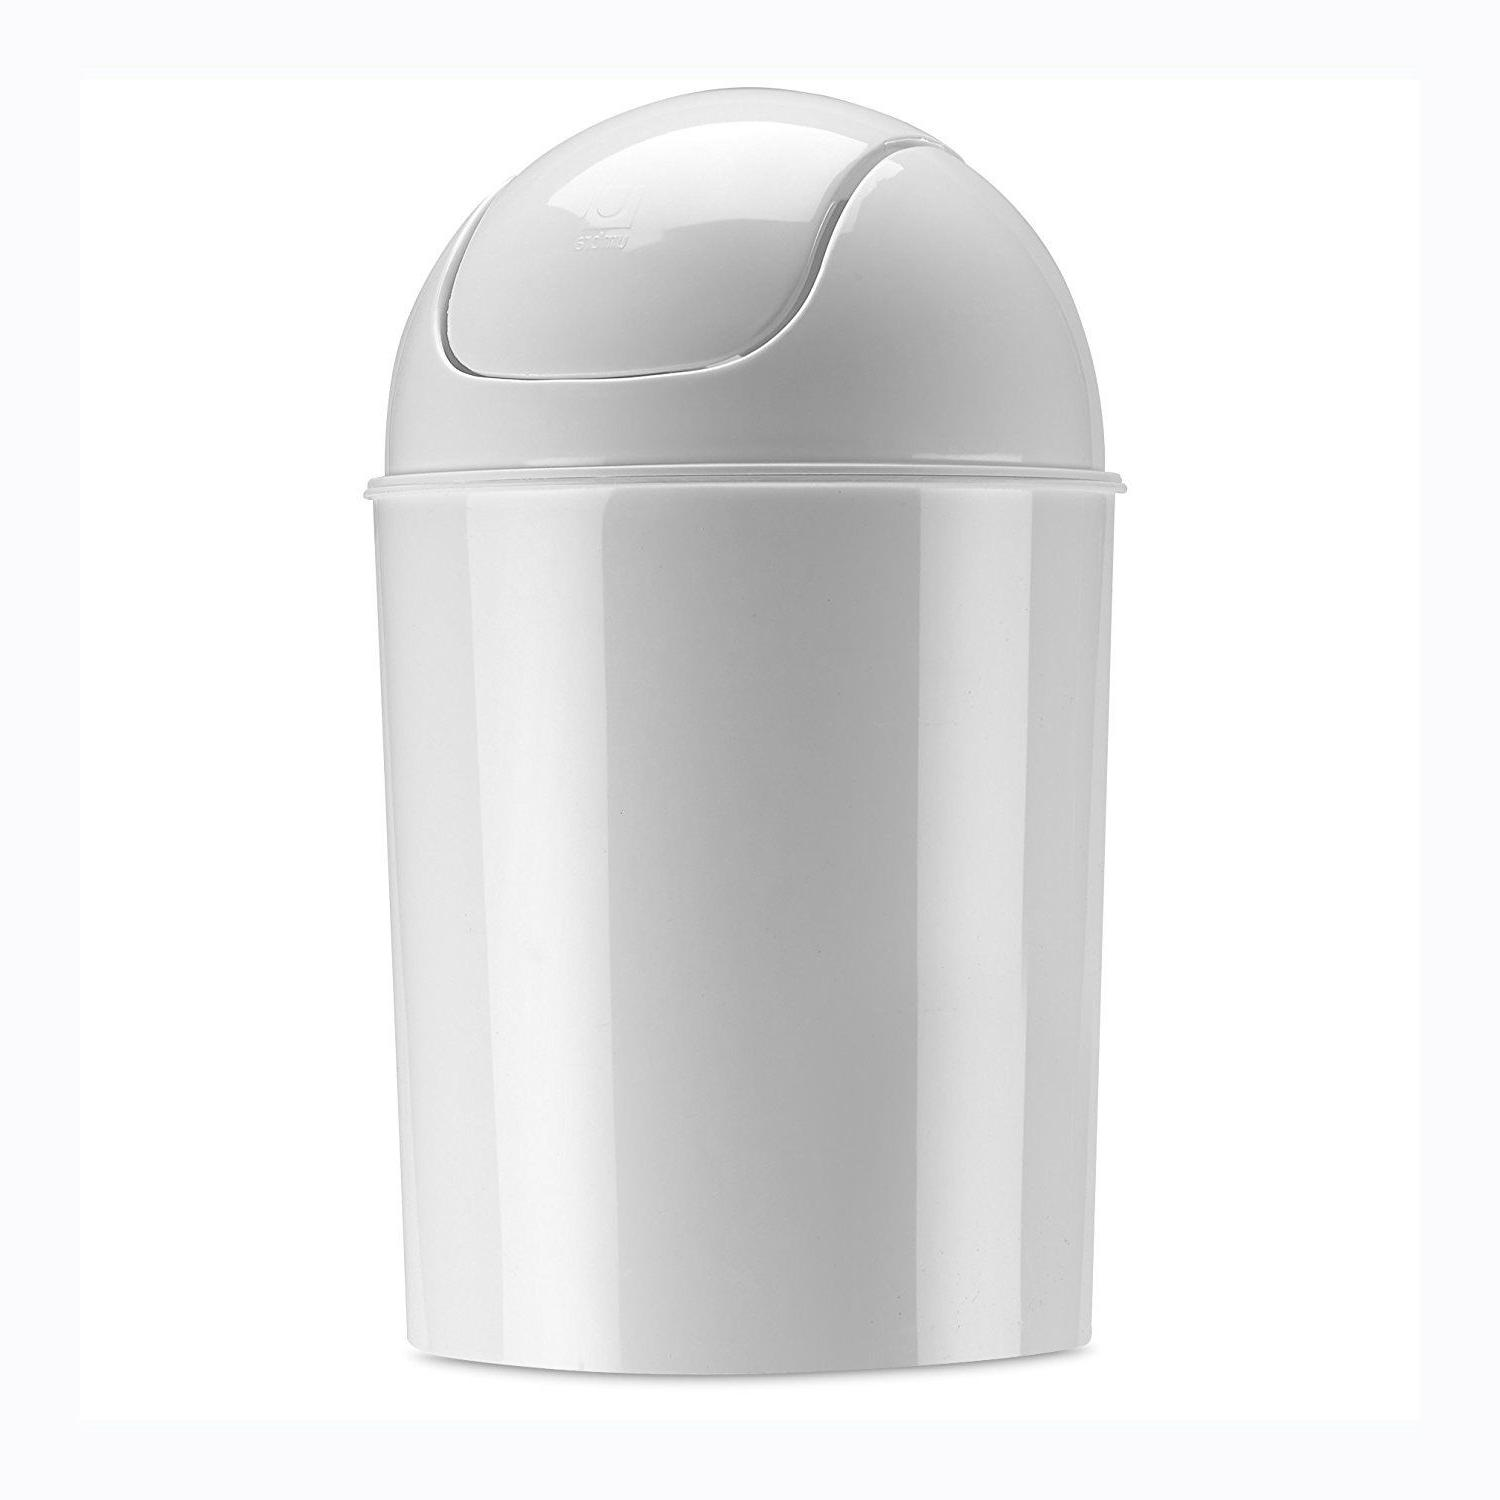 Waste Garbage Basket Can For Bathroom 1/2 Gallon with Swing Lid Colorful